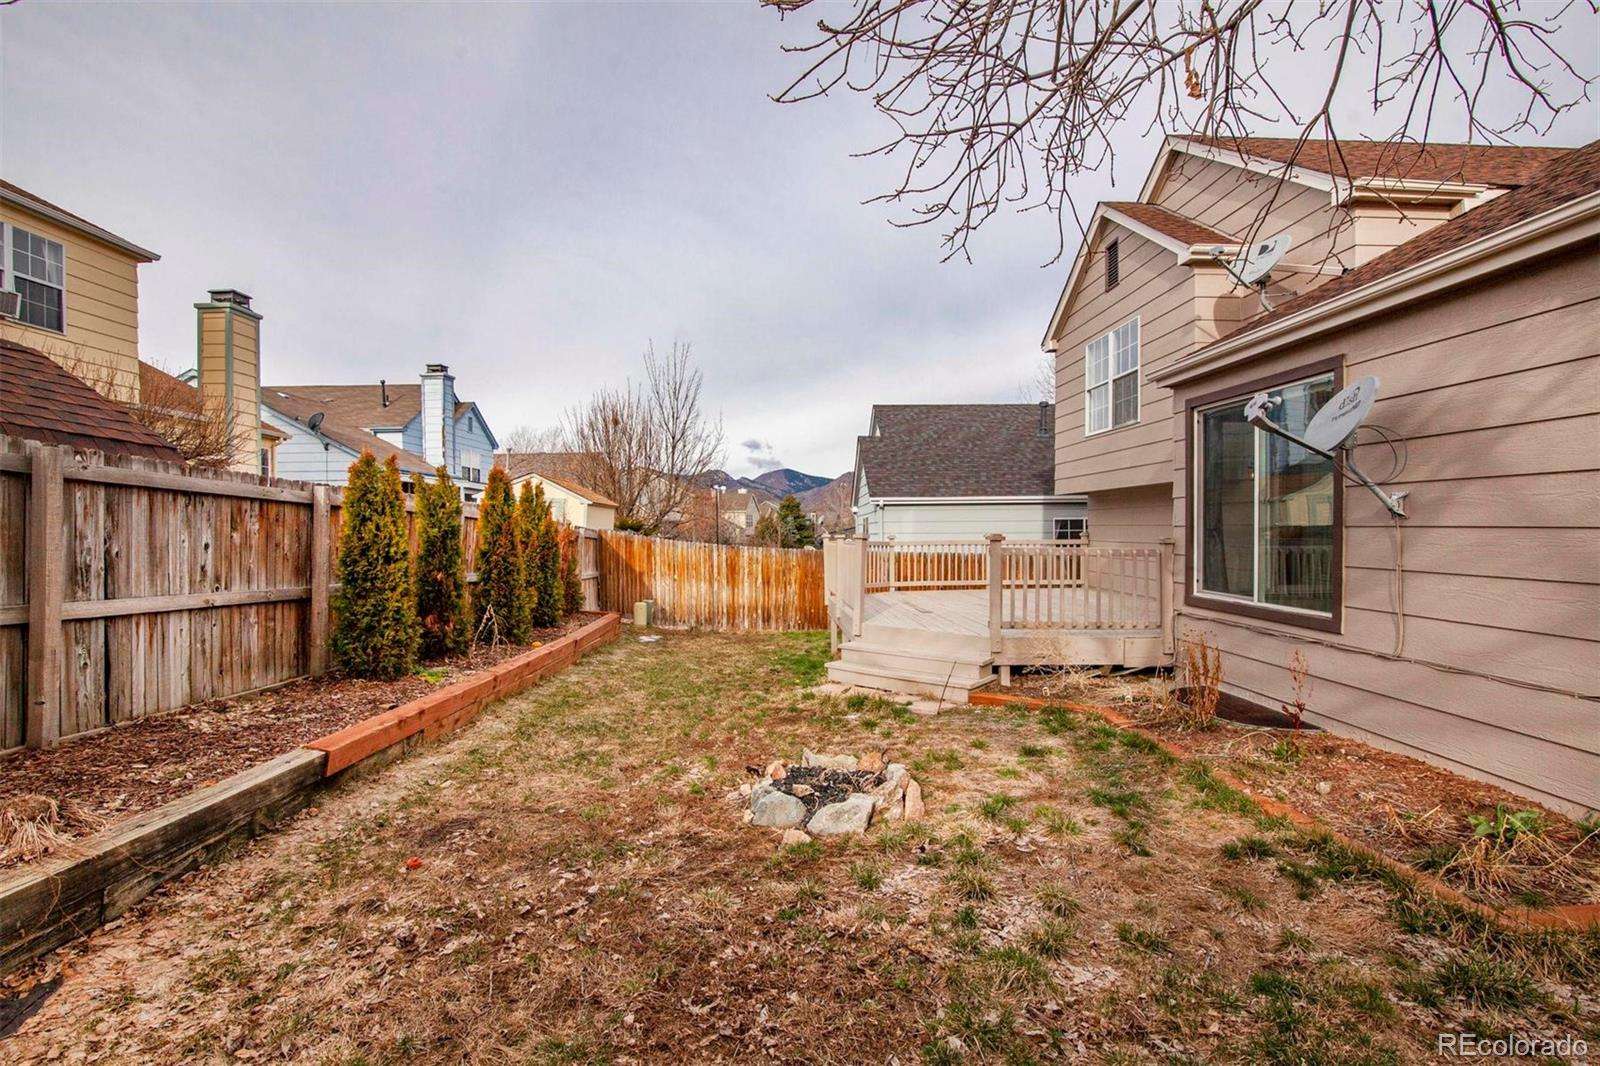 MLS# 3467653 - 37 - 9776 Garwood Street, Littleton, CO 80125